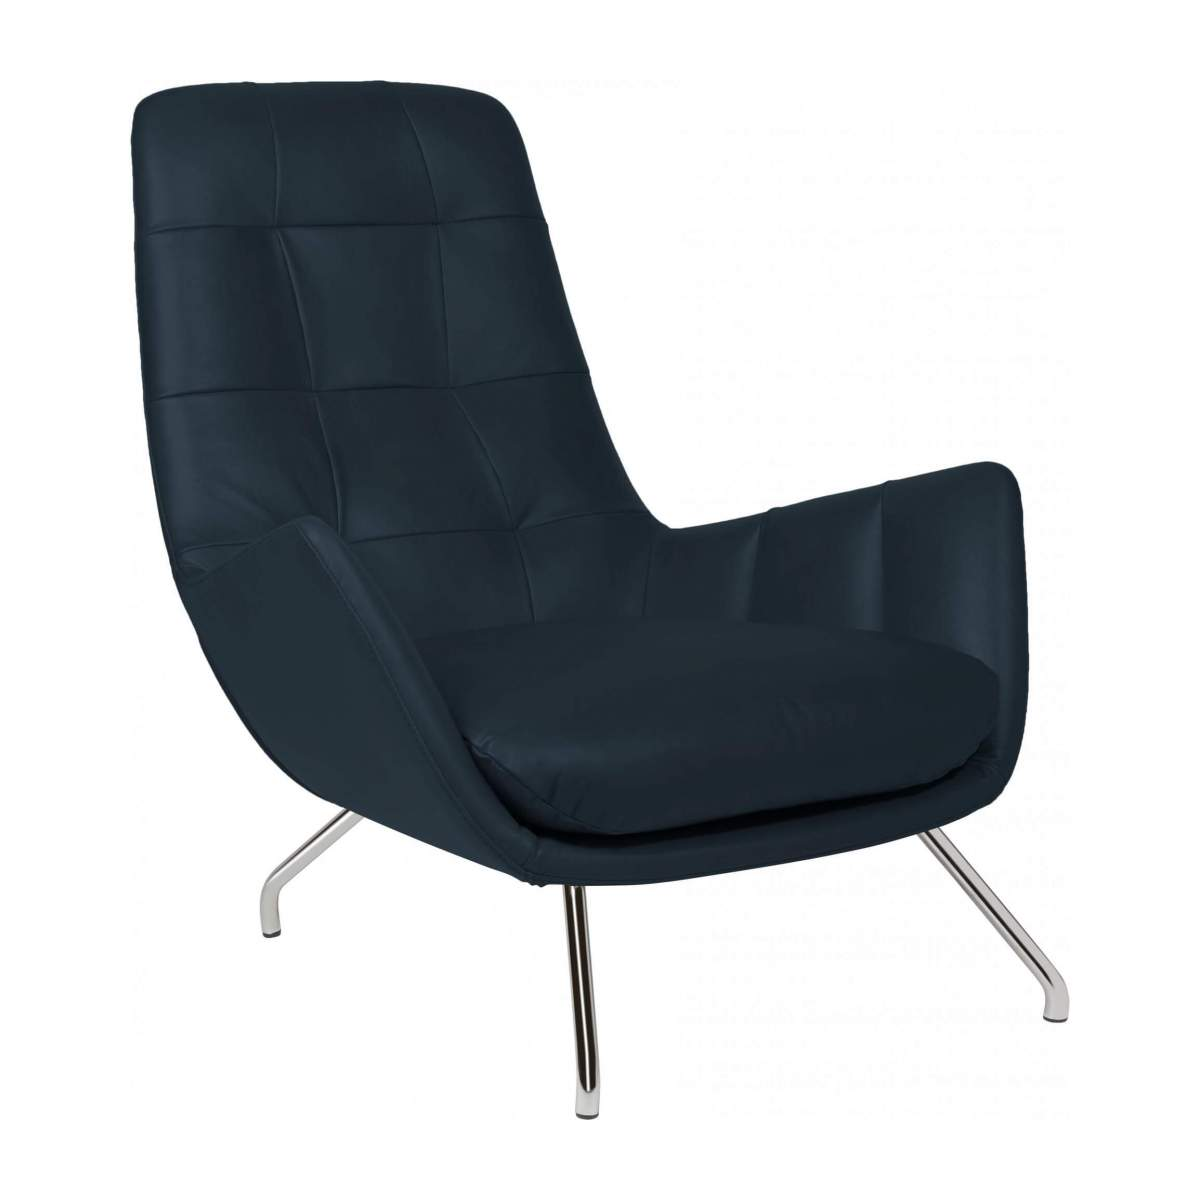 Armchair in Vintage aniline leather, denim blue with chromed metal legs n°2